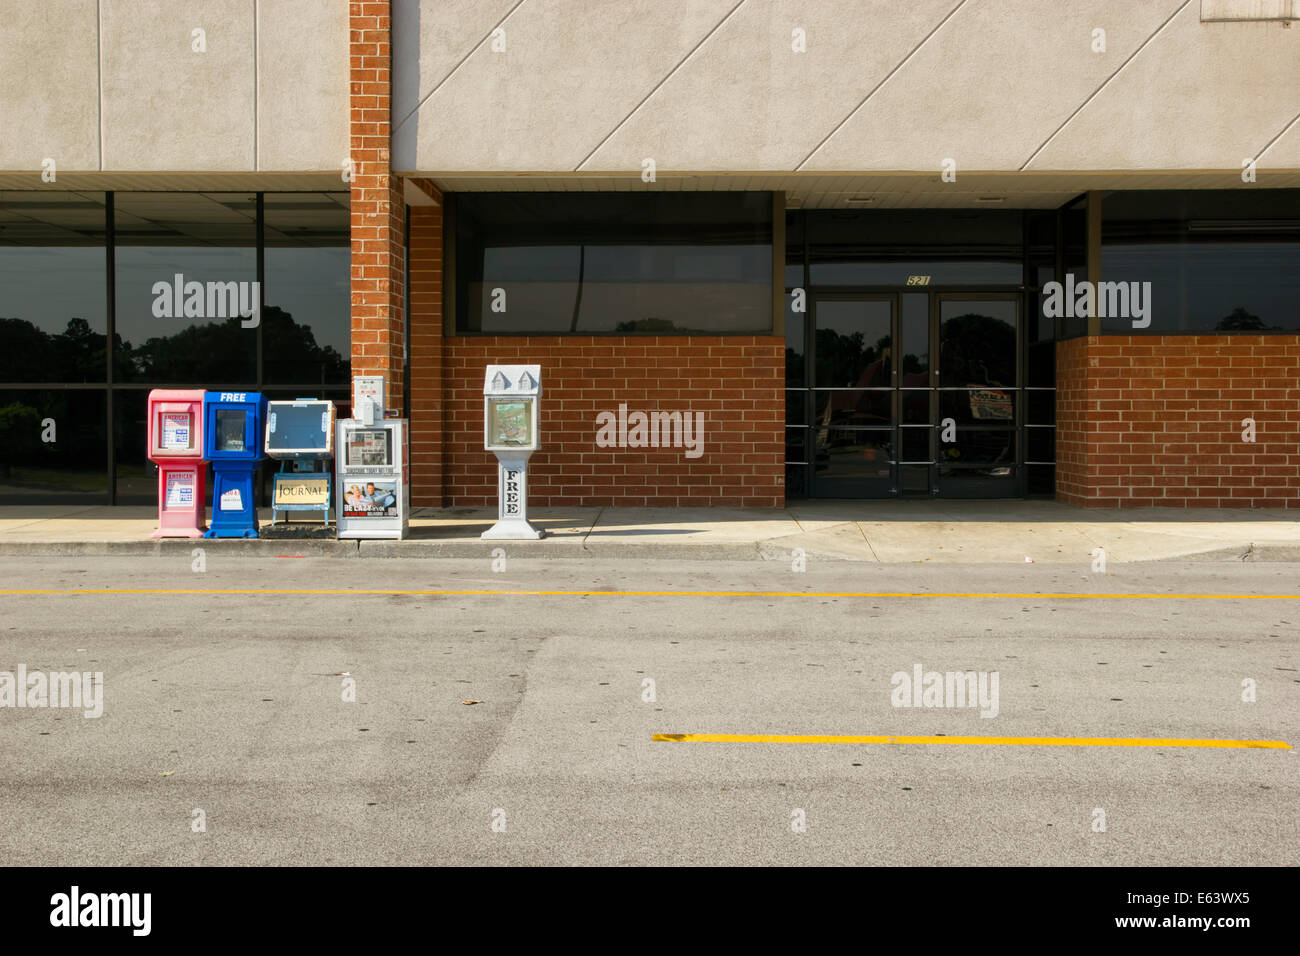 An empty storefront in an abandoned strip mall. - Stock Image